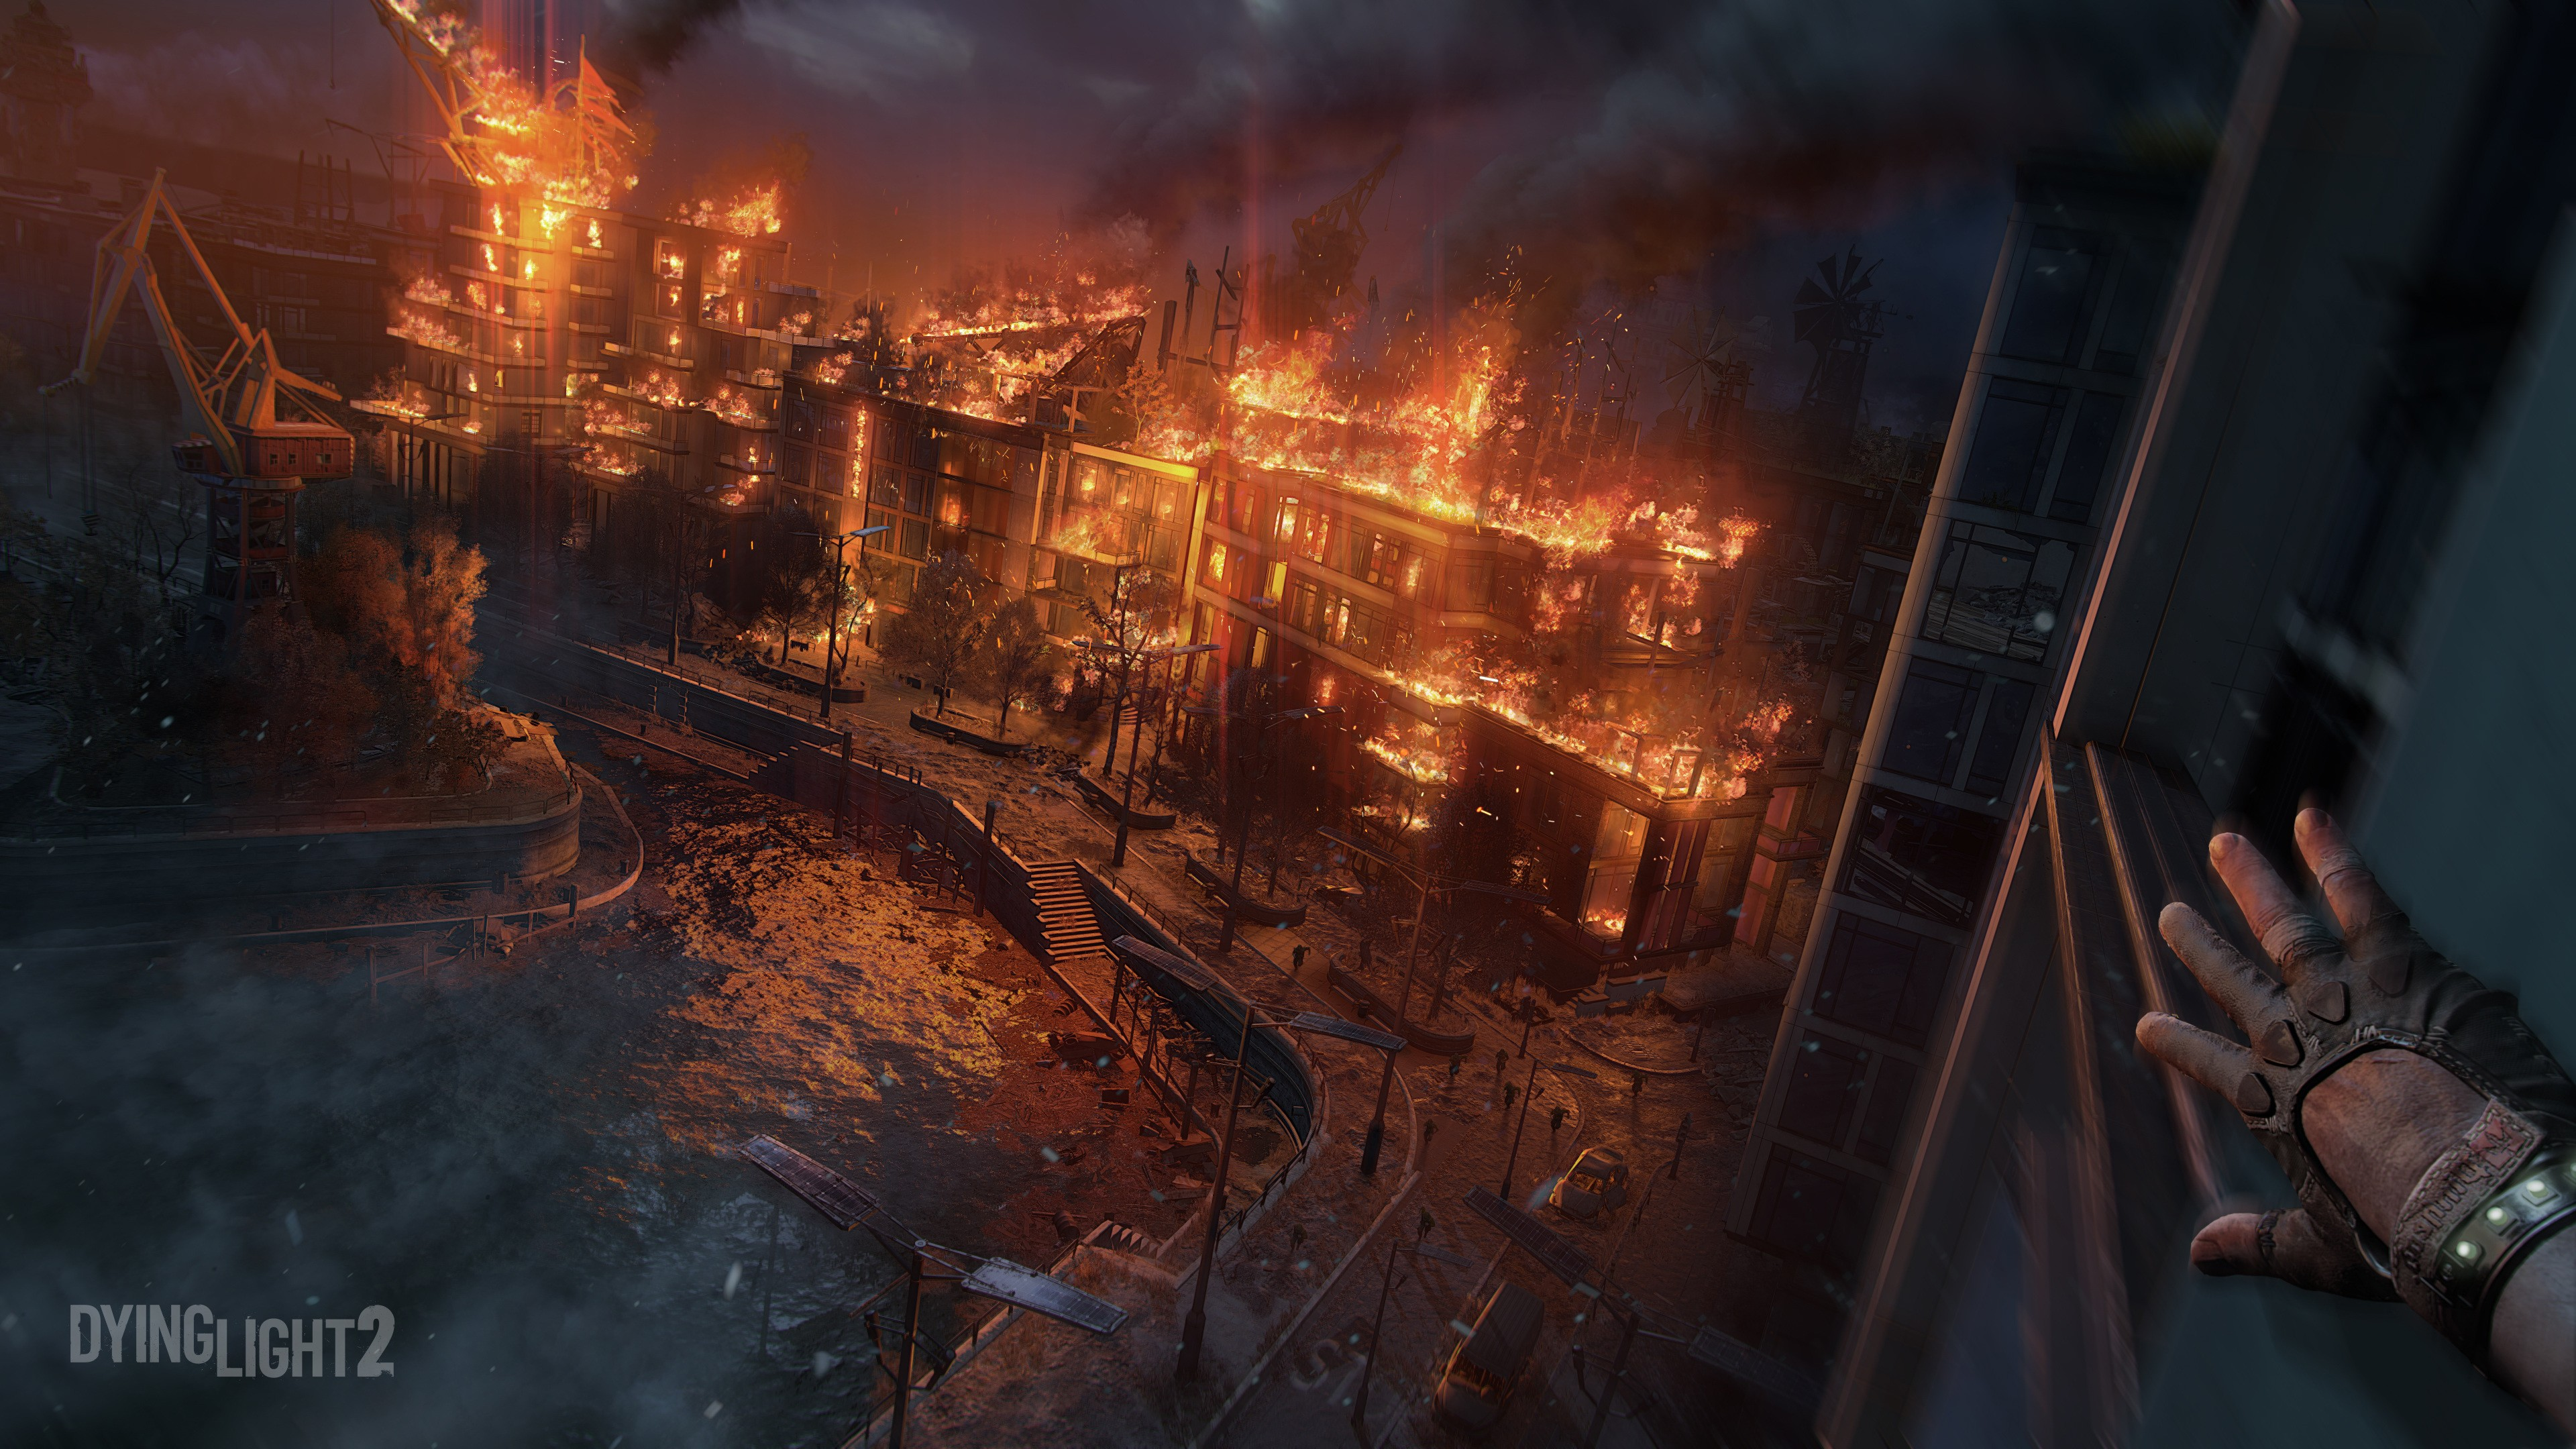 dying light 2 game wide wallpaper 69786